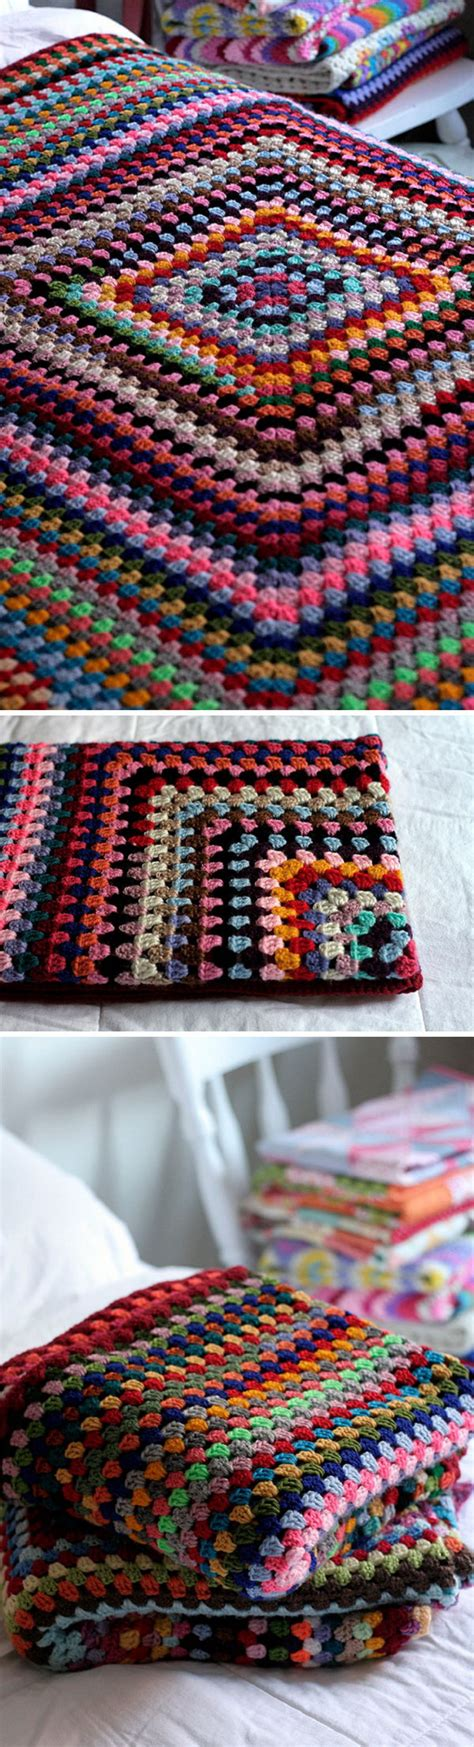 crochet quilt patterns 45 and easy crochet blanket patterns for beginners